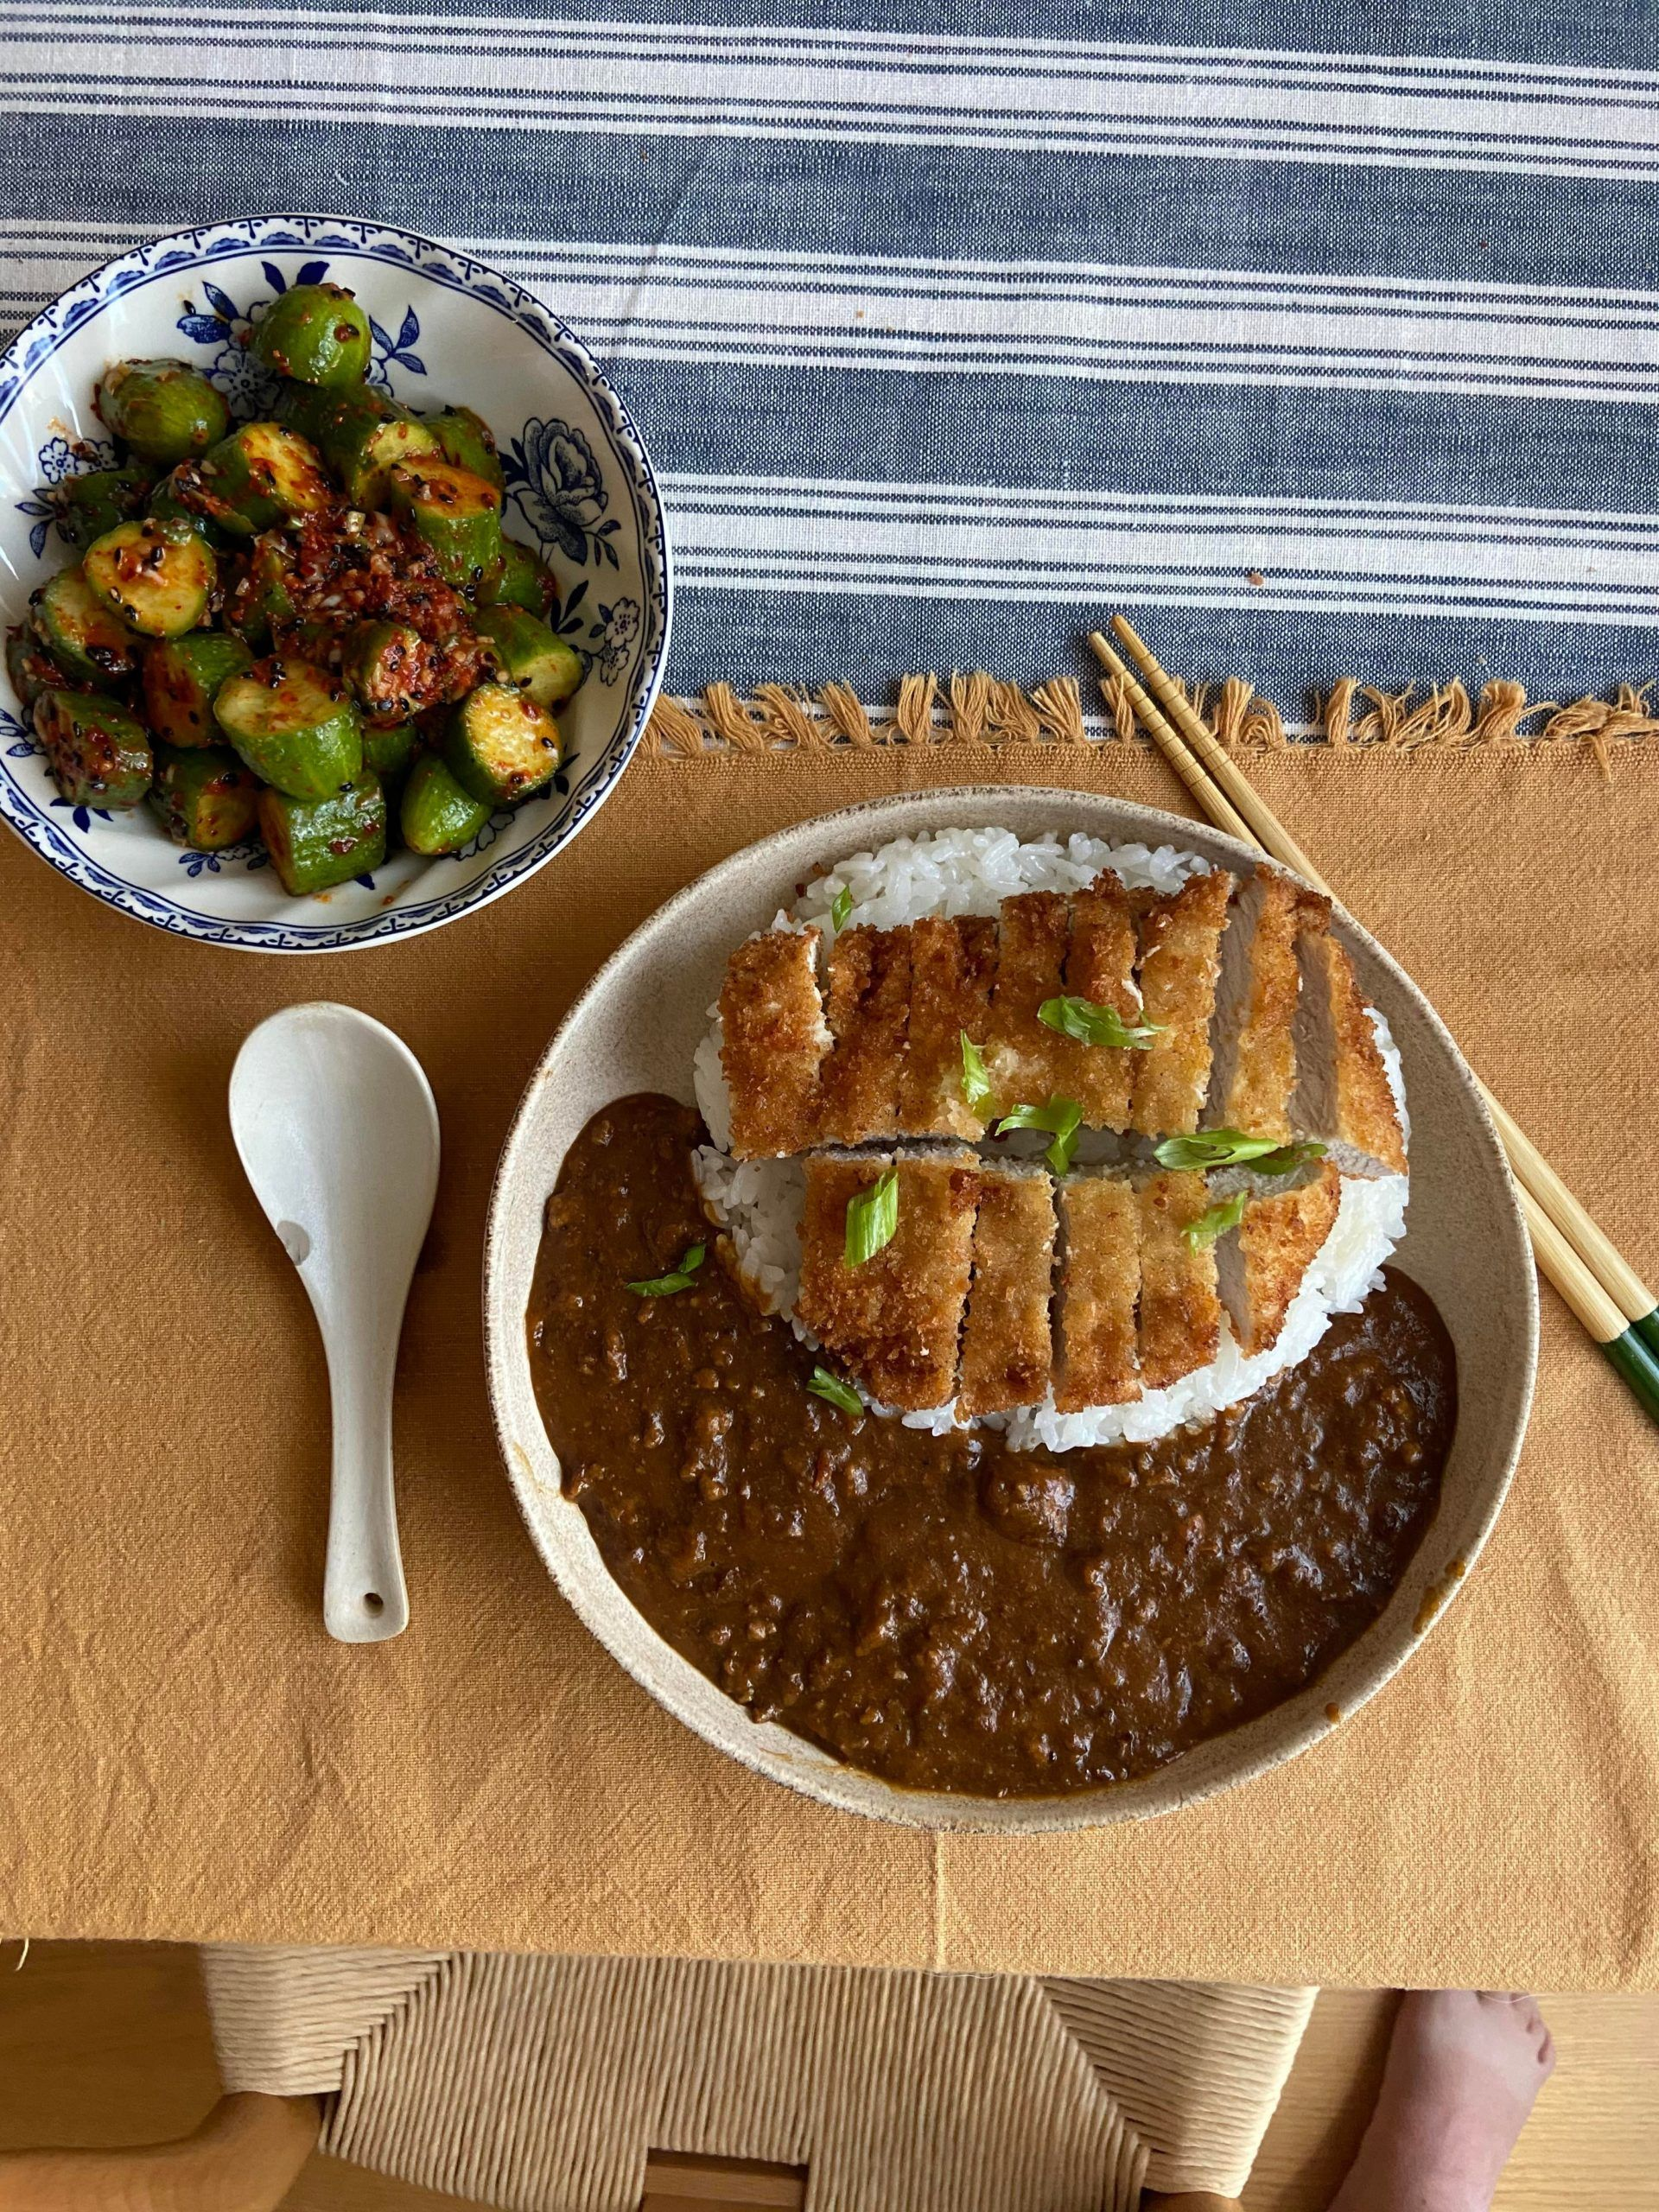 Tonkatsu Curry Rice With Oi Muchim Food Japanesefood Reddit Redditjapanesefood Https Www Alojap In 2020 Pork Cutlets Japanese Curry Spicy Cucumber Salad